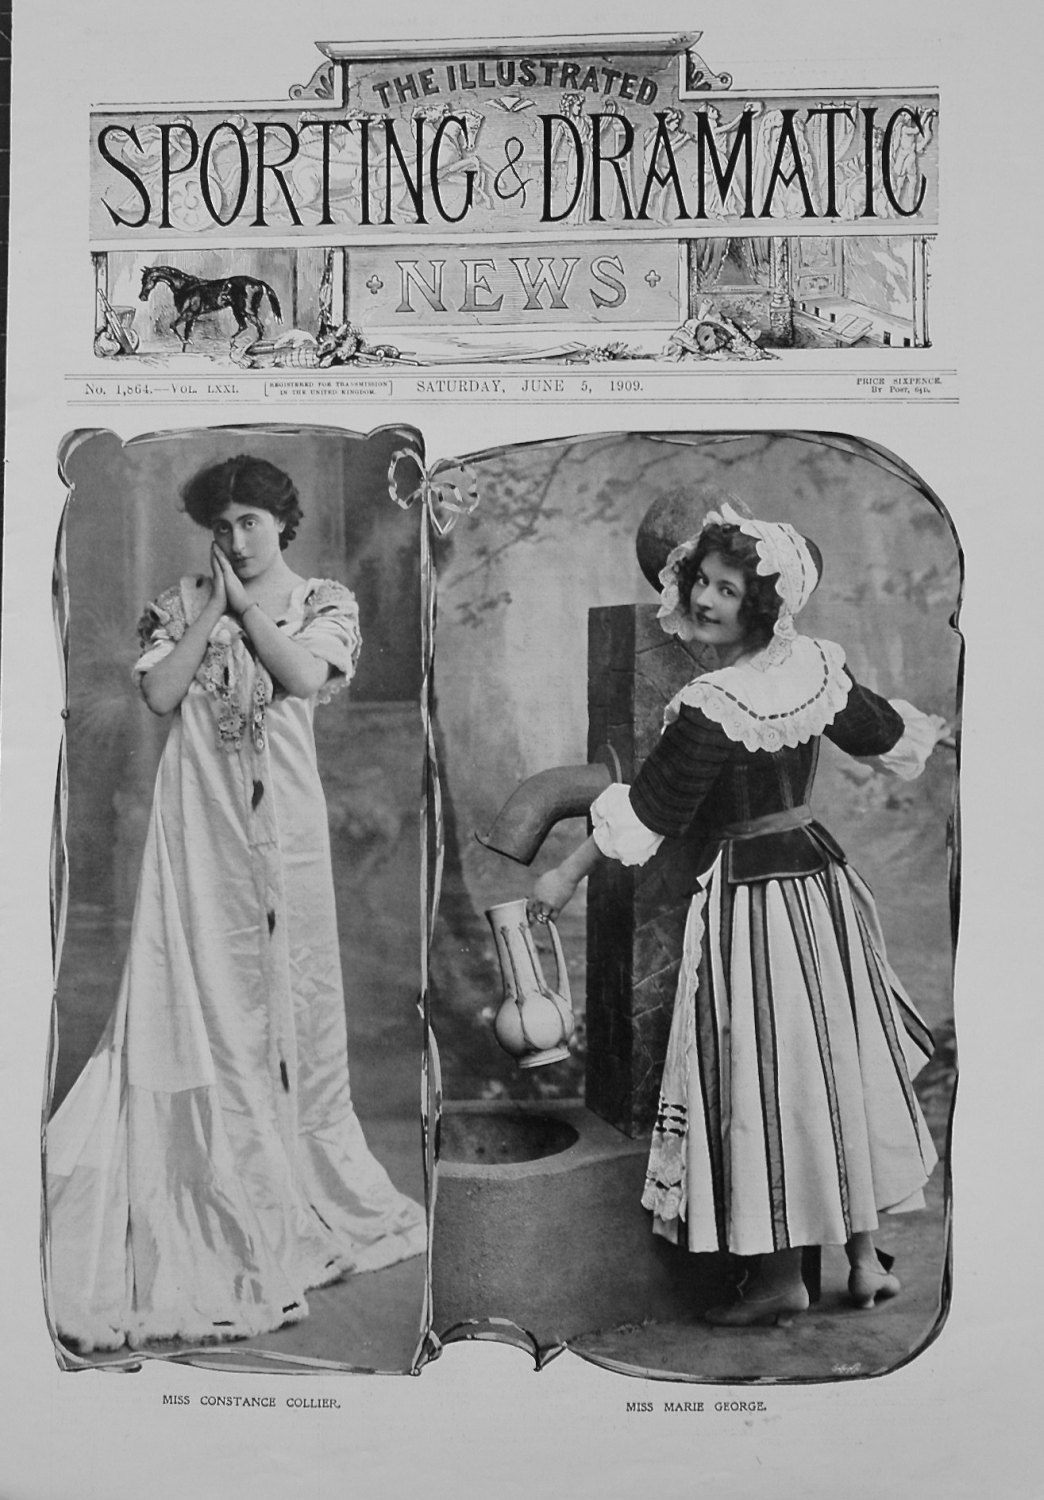 Miss Constance Collier, and Miss Marie George. 1909